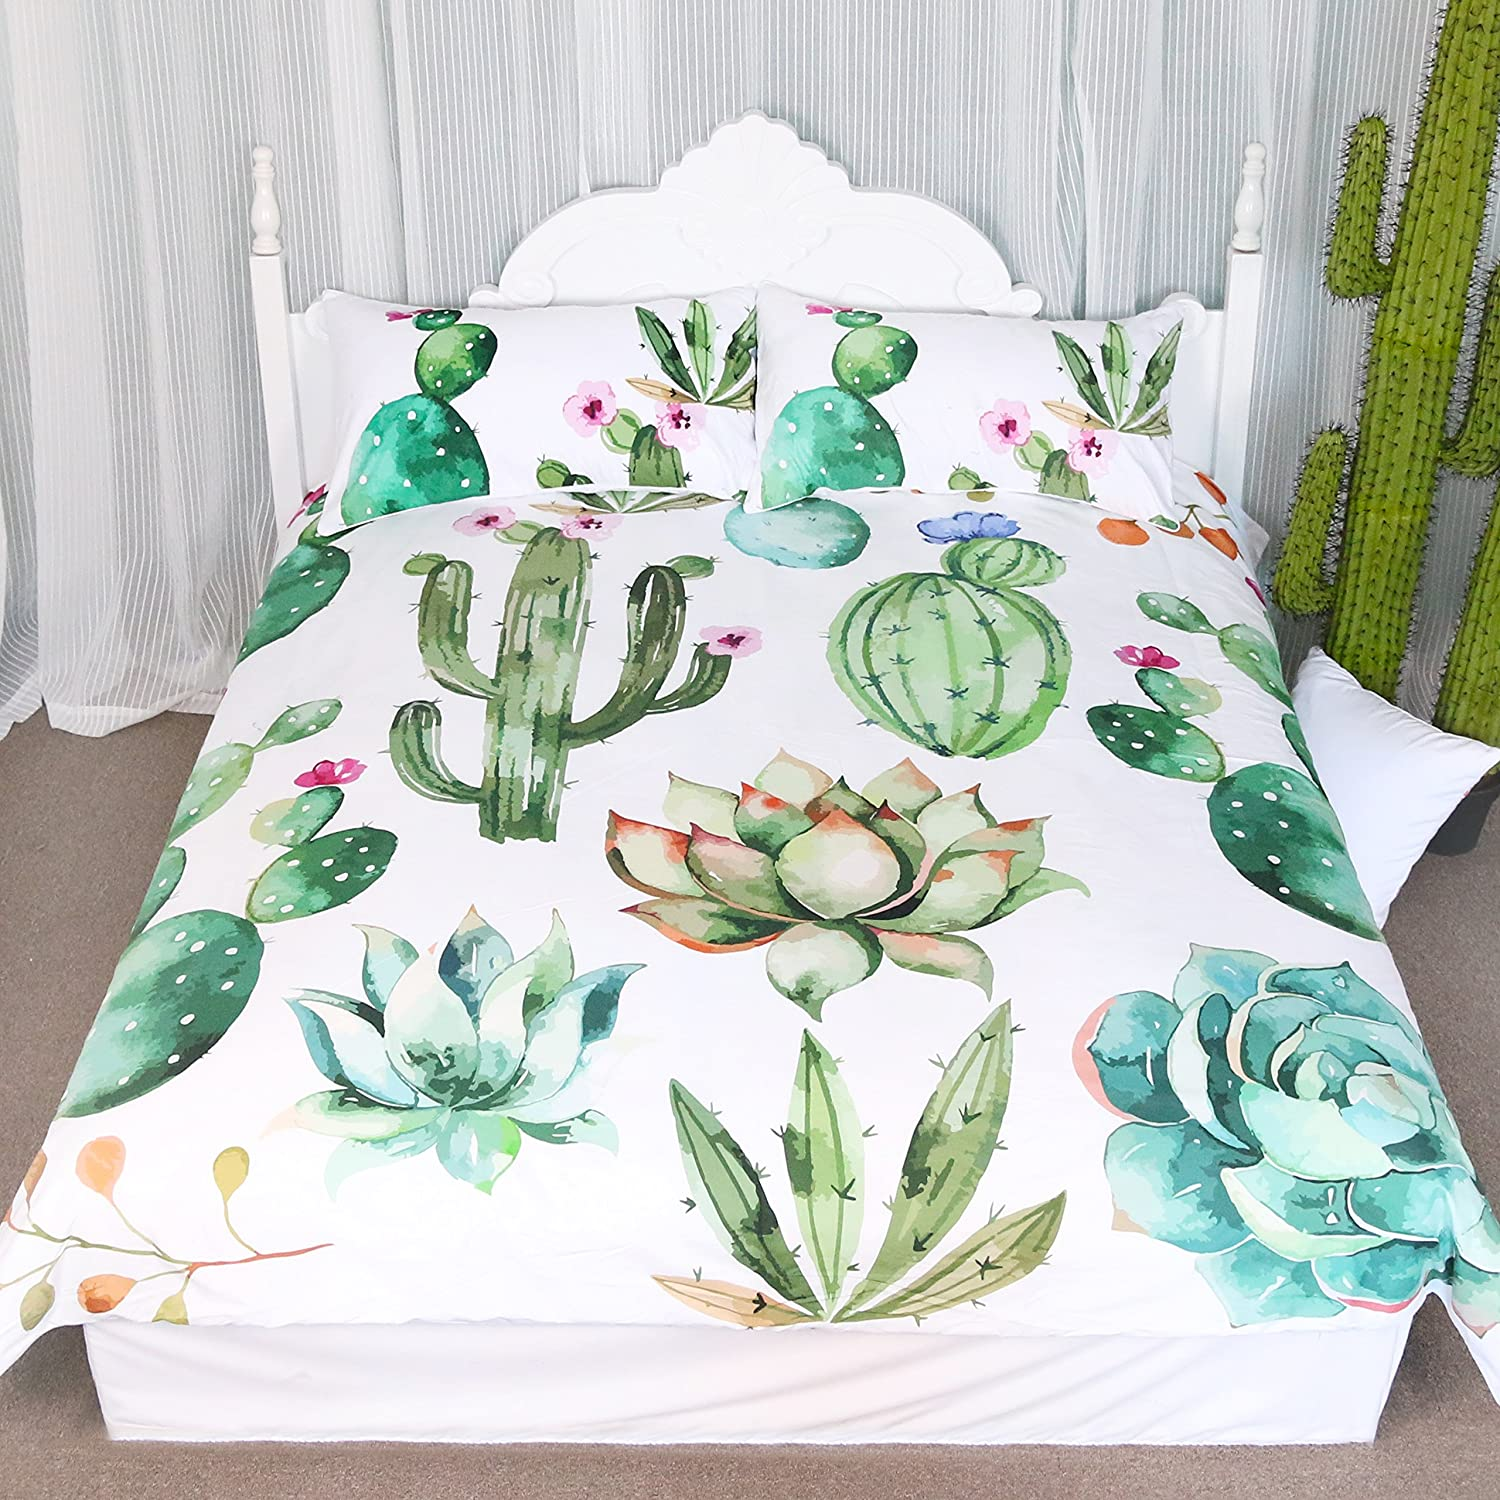 Bright Cactus Pattern Bedding Set Green plants cactus Print 3 Pieces Duvet Cover Set Nature Art Prints Decor Collection (Full)